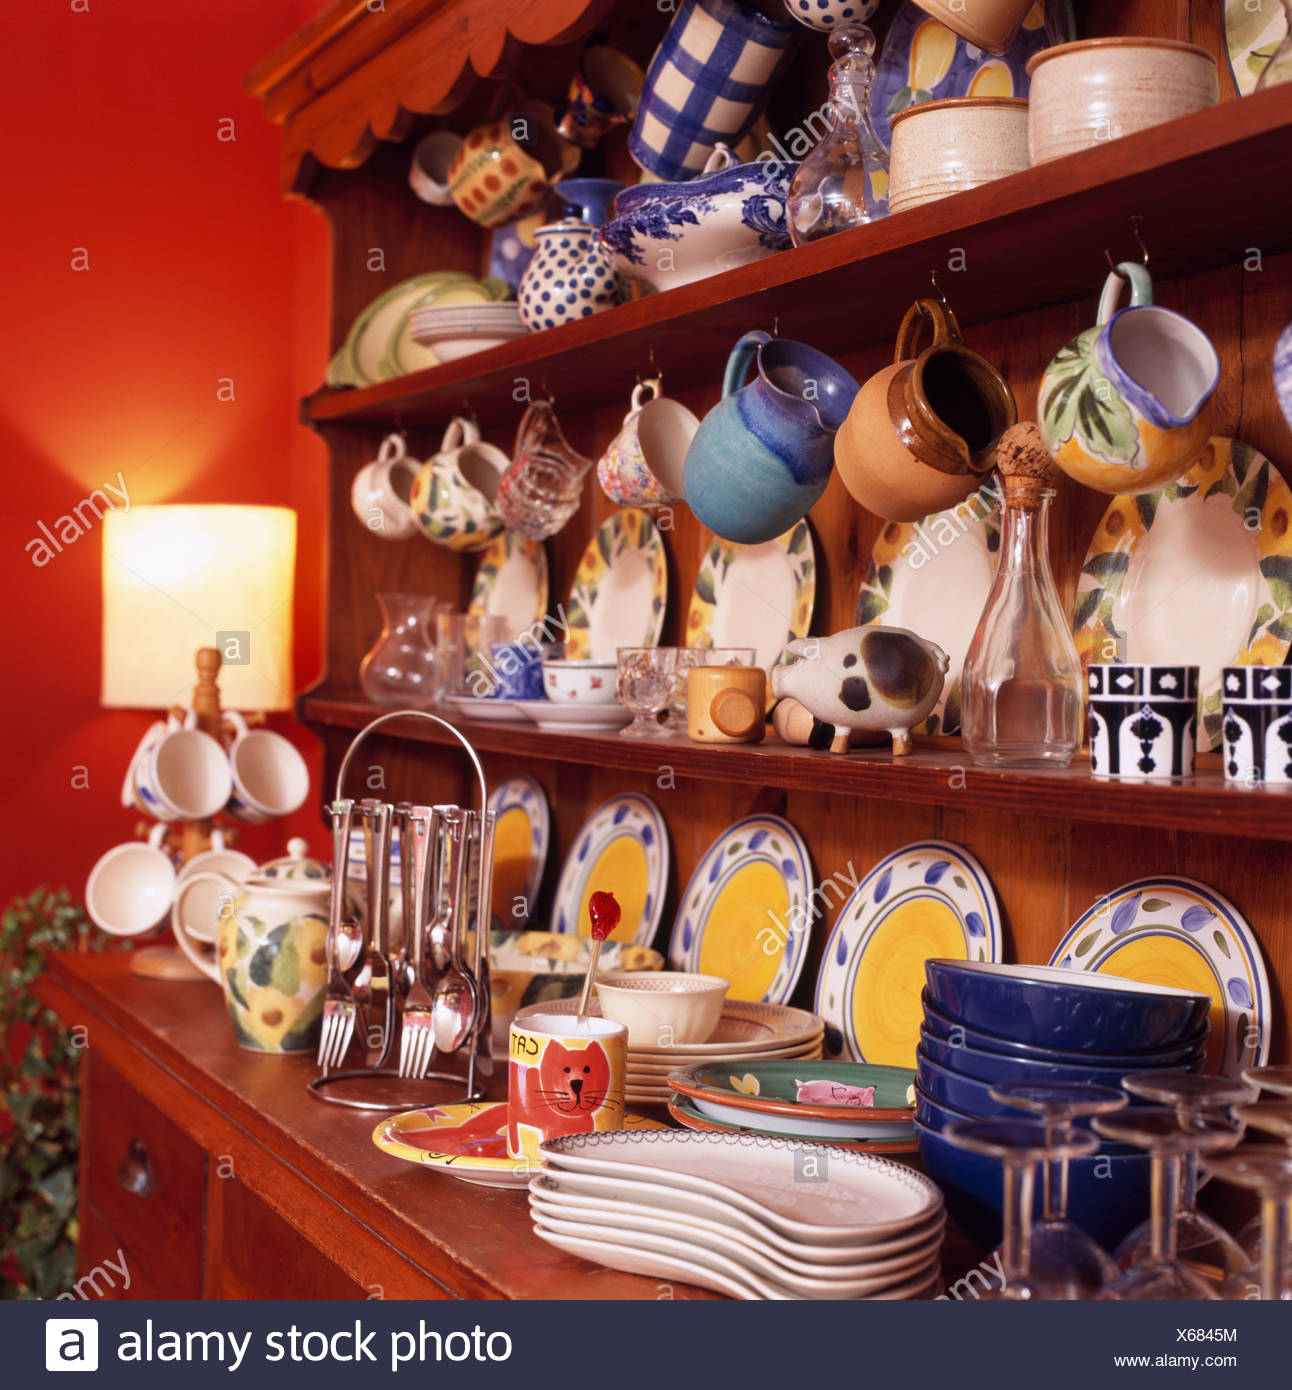 Dresser With Colourful Crockery On Shelves In Red Dining Room